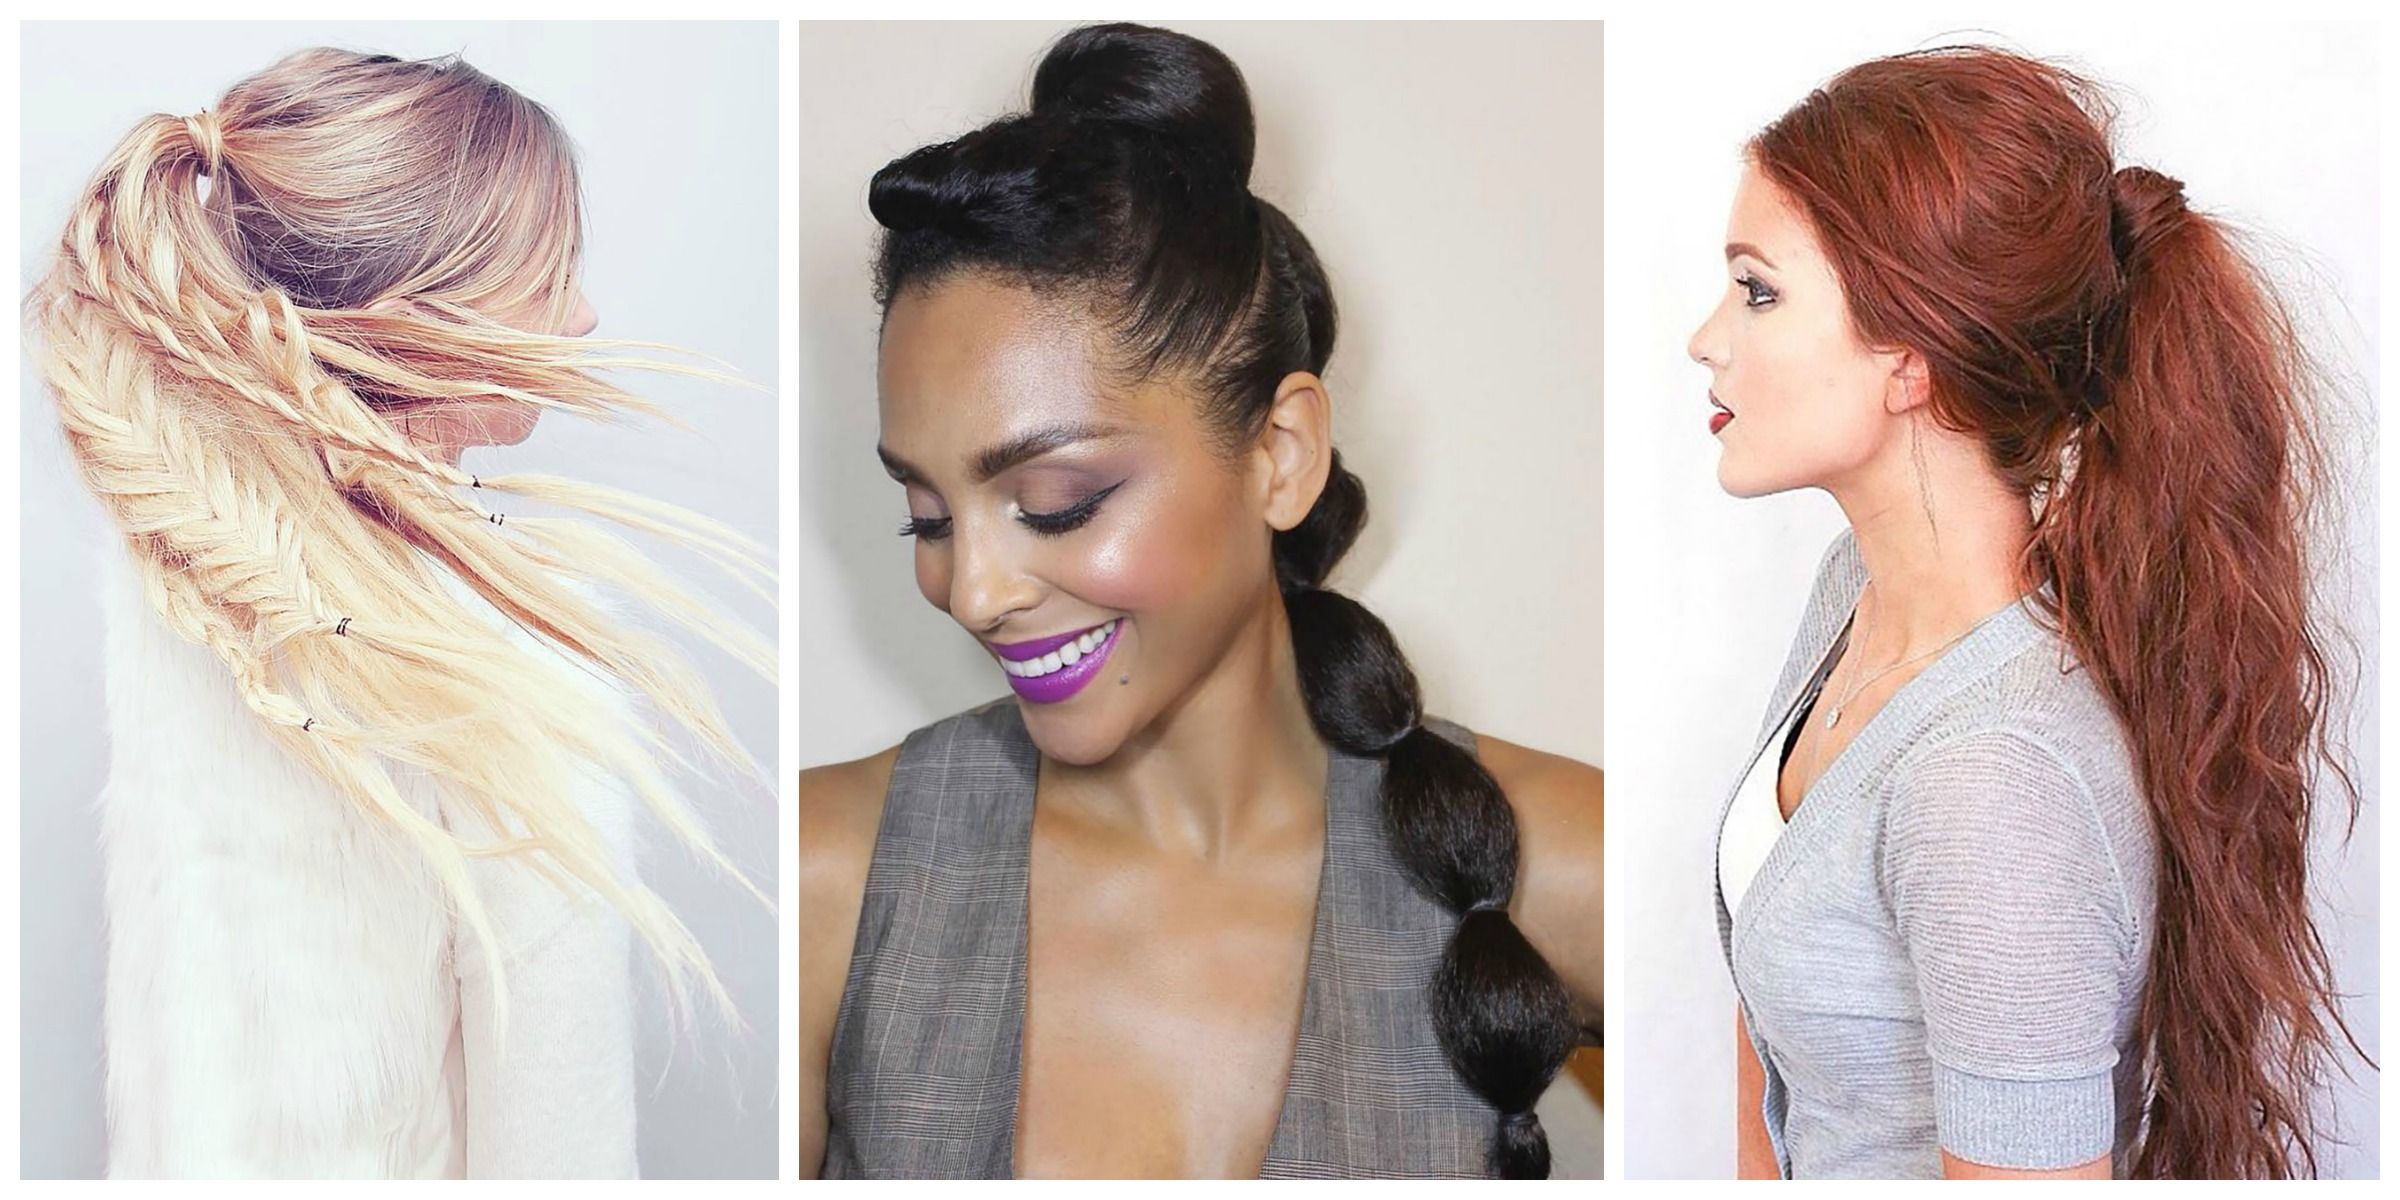 Groovy Ponytail Hairstyles 5 Easy Ponytail Looks For The Work Week Natural Hairstyles Runnerswayorg